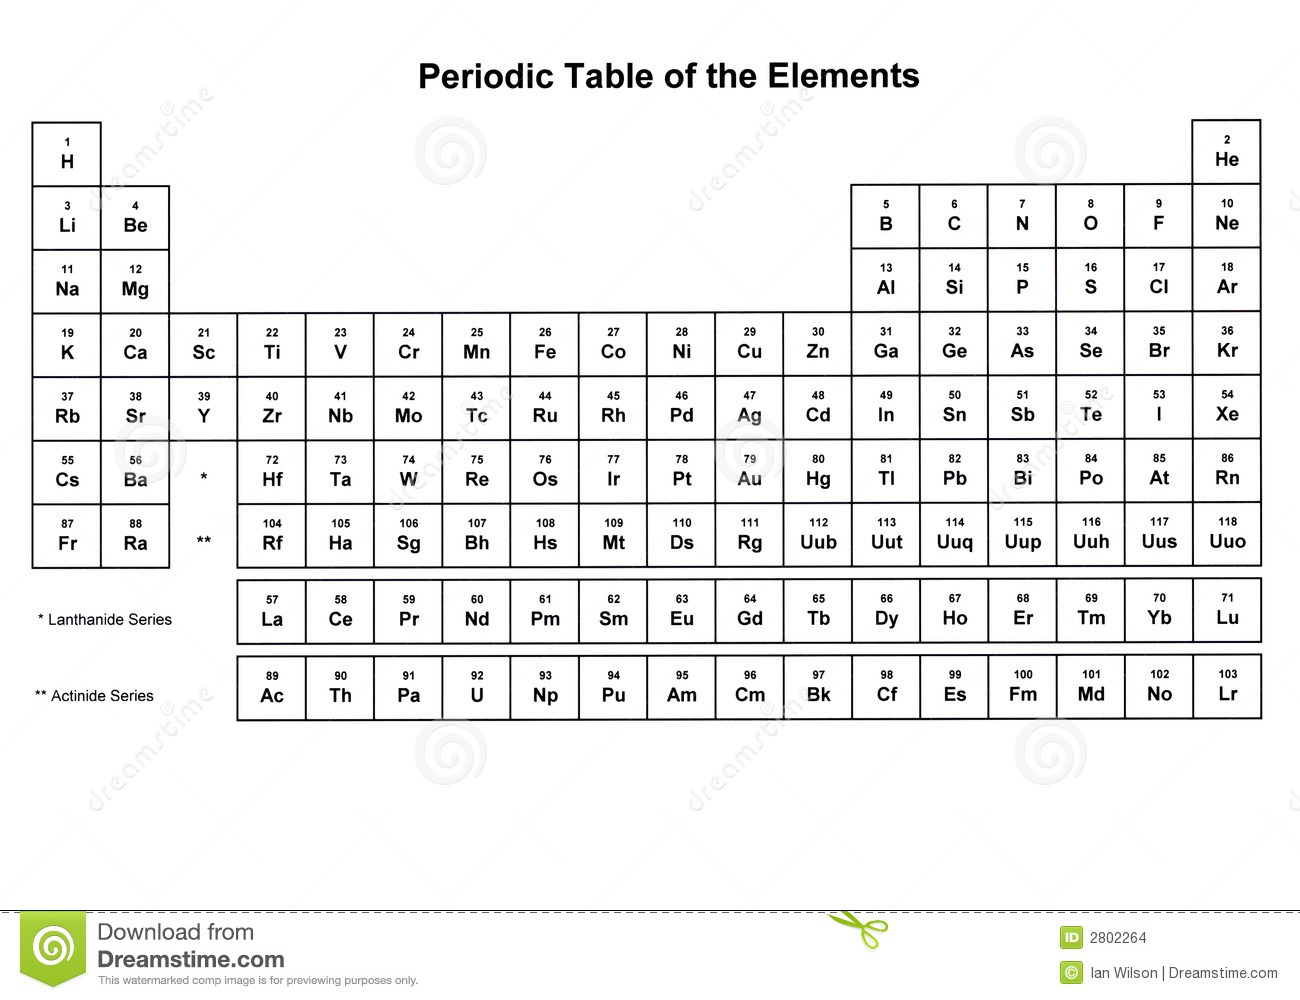 Periodic table of the elements stock illustration image 2802264 periodic table of the elements royalty free stock photo gamestrikefo Image collections